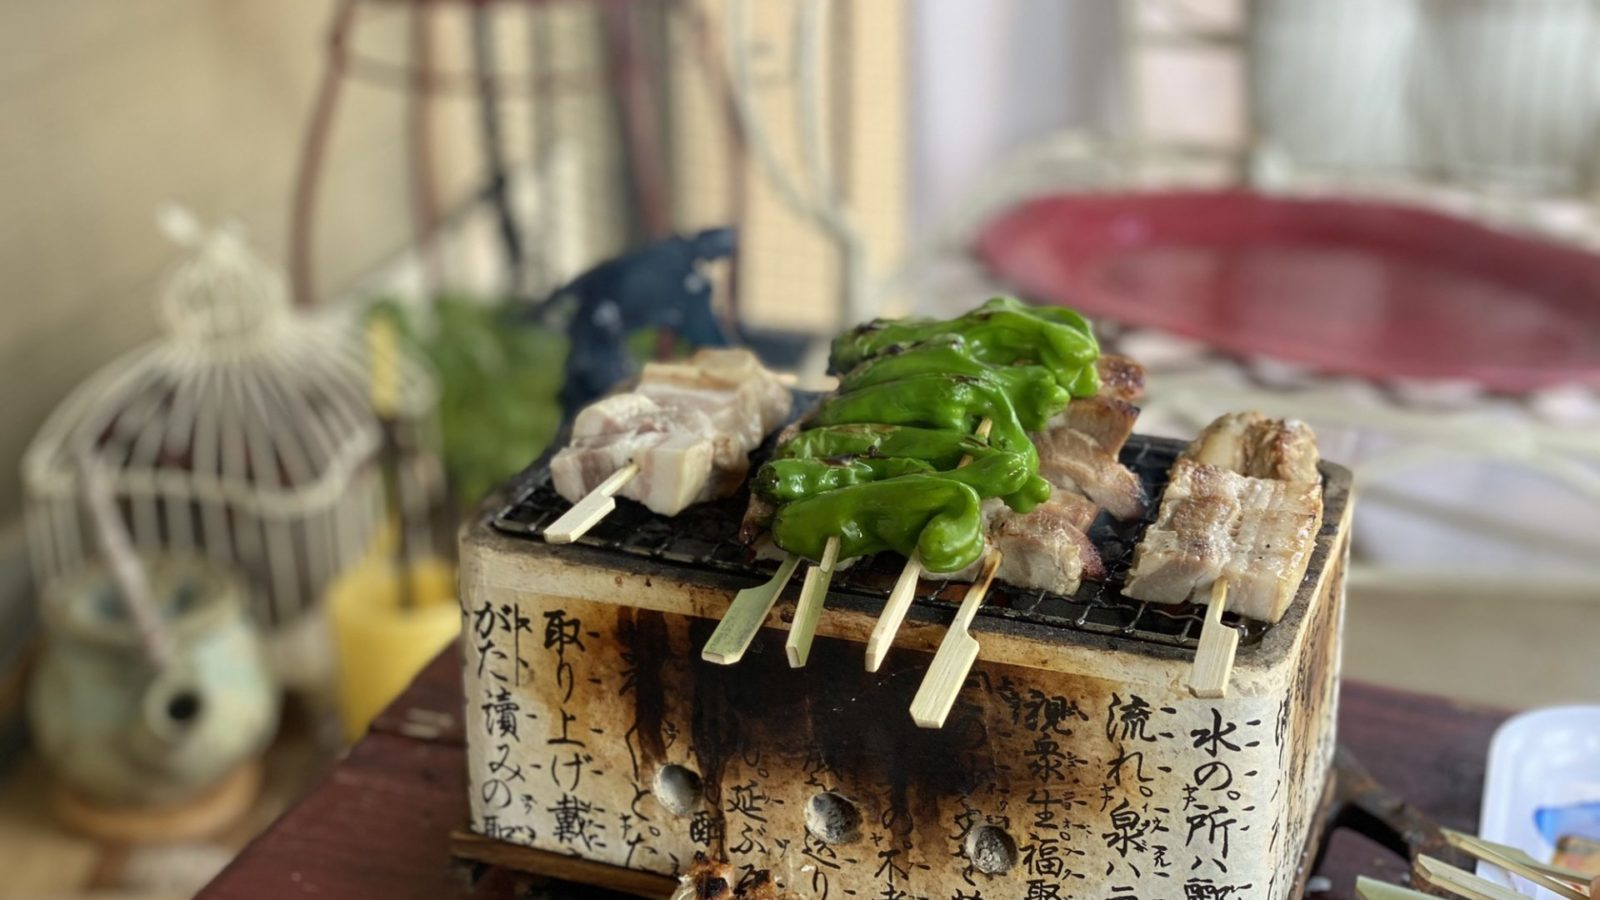 Yakitori Grill at Home for the Beginner 1